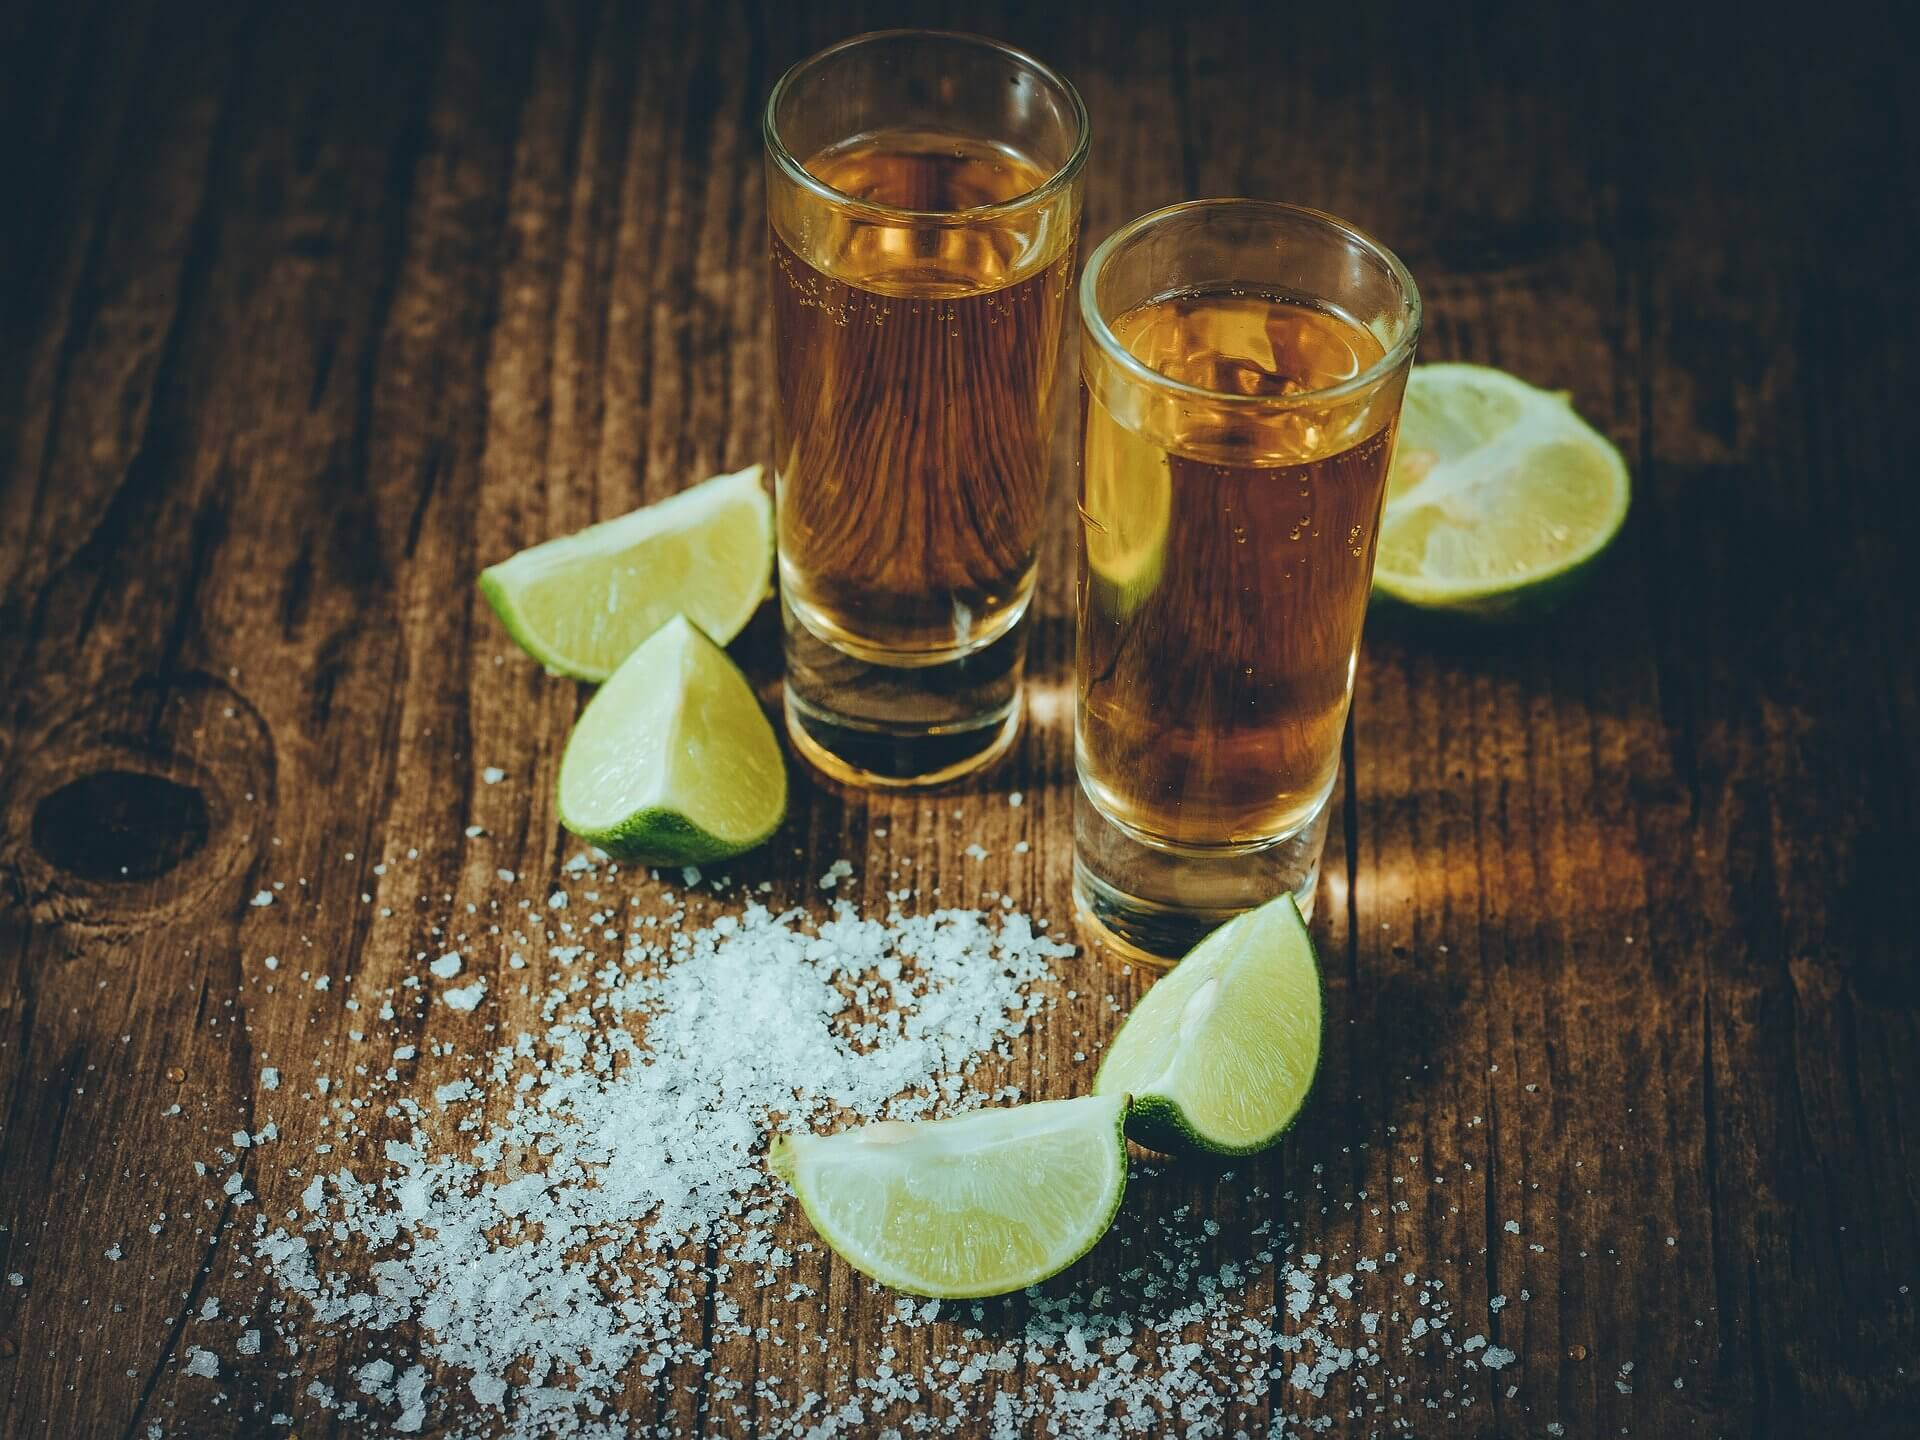 Shots of tequila surrounded by lime wedges and salt